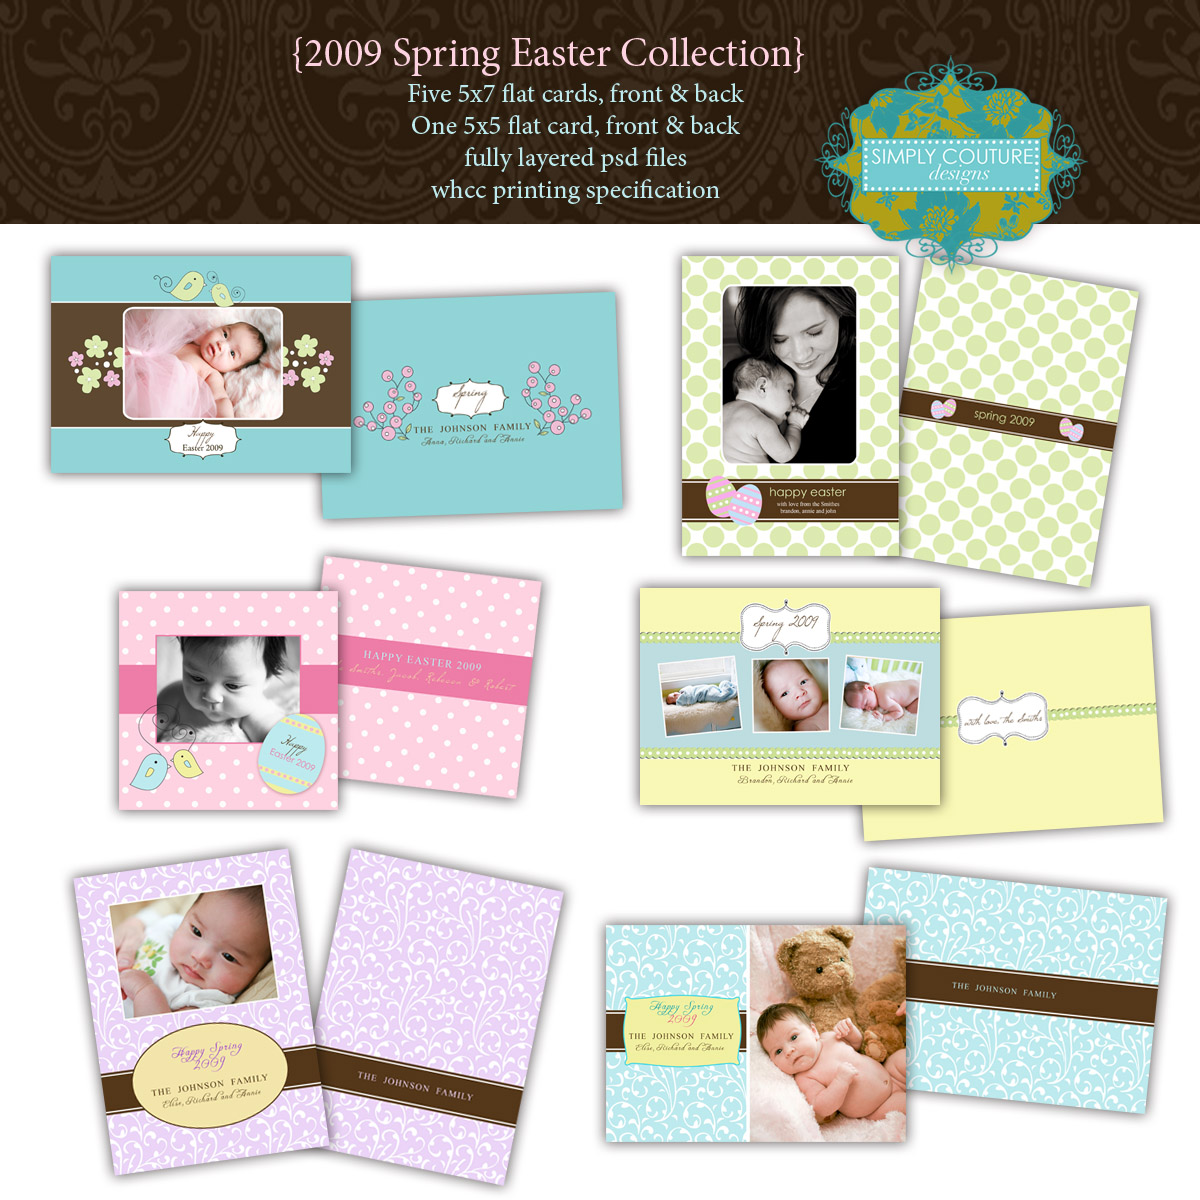 Simply couture designs custom photo card templates including baby here are the close up pictures of the cards click on the images to see them larger maxwellsz